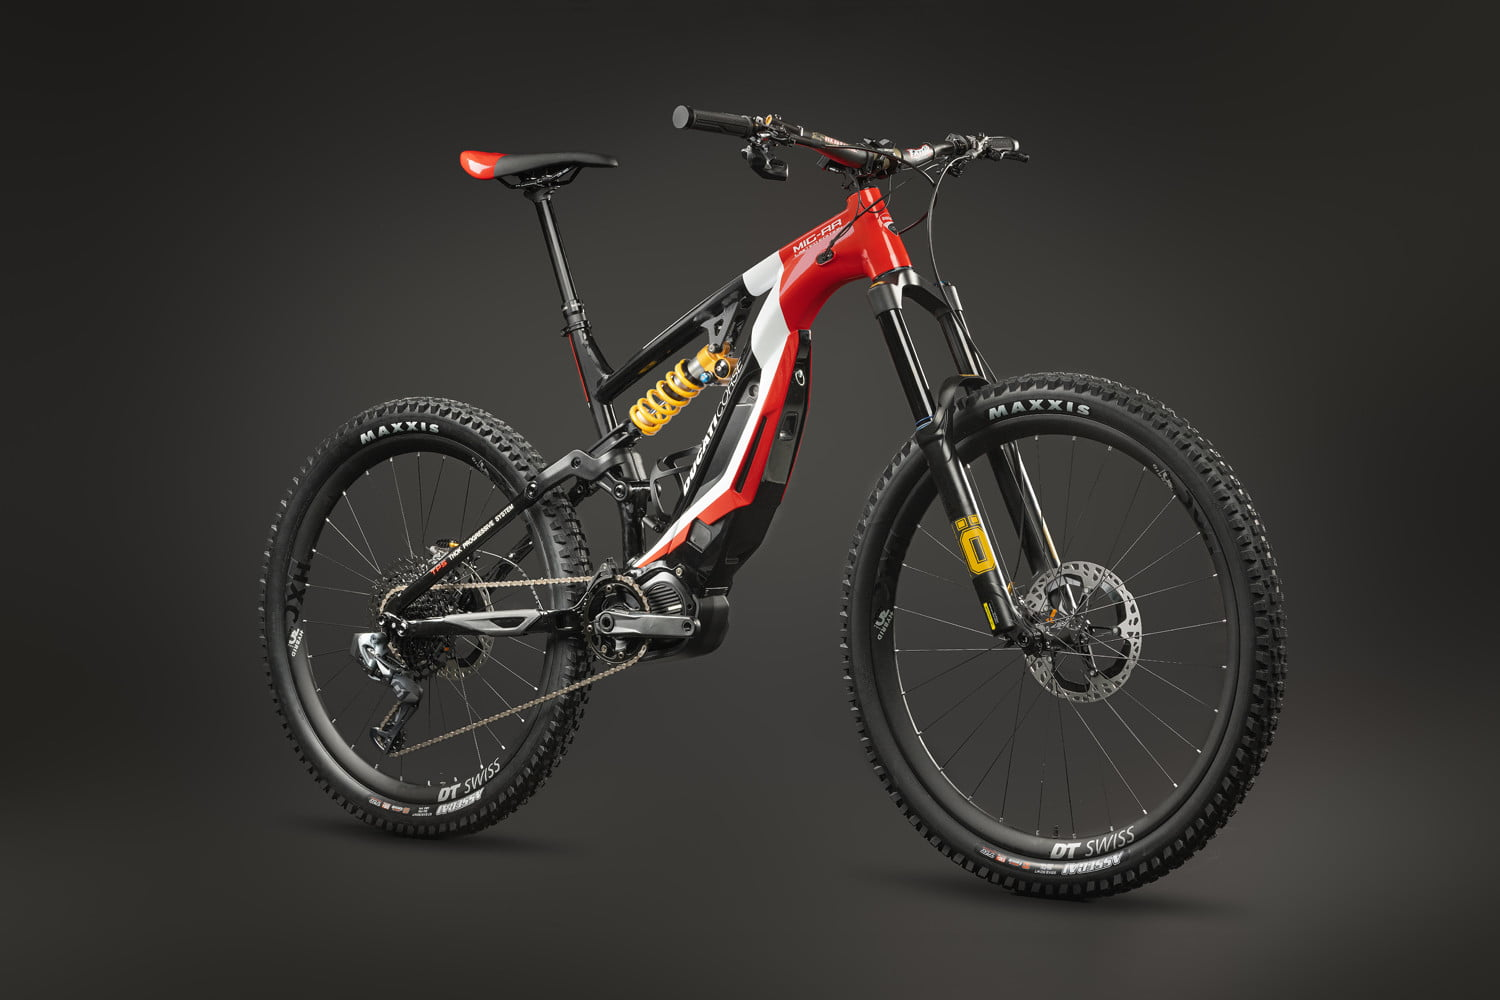 2020 ducati electric bicycle mountain bike range detailed mig rr limited edition 2